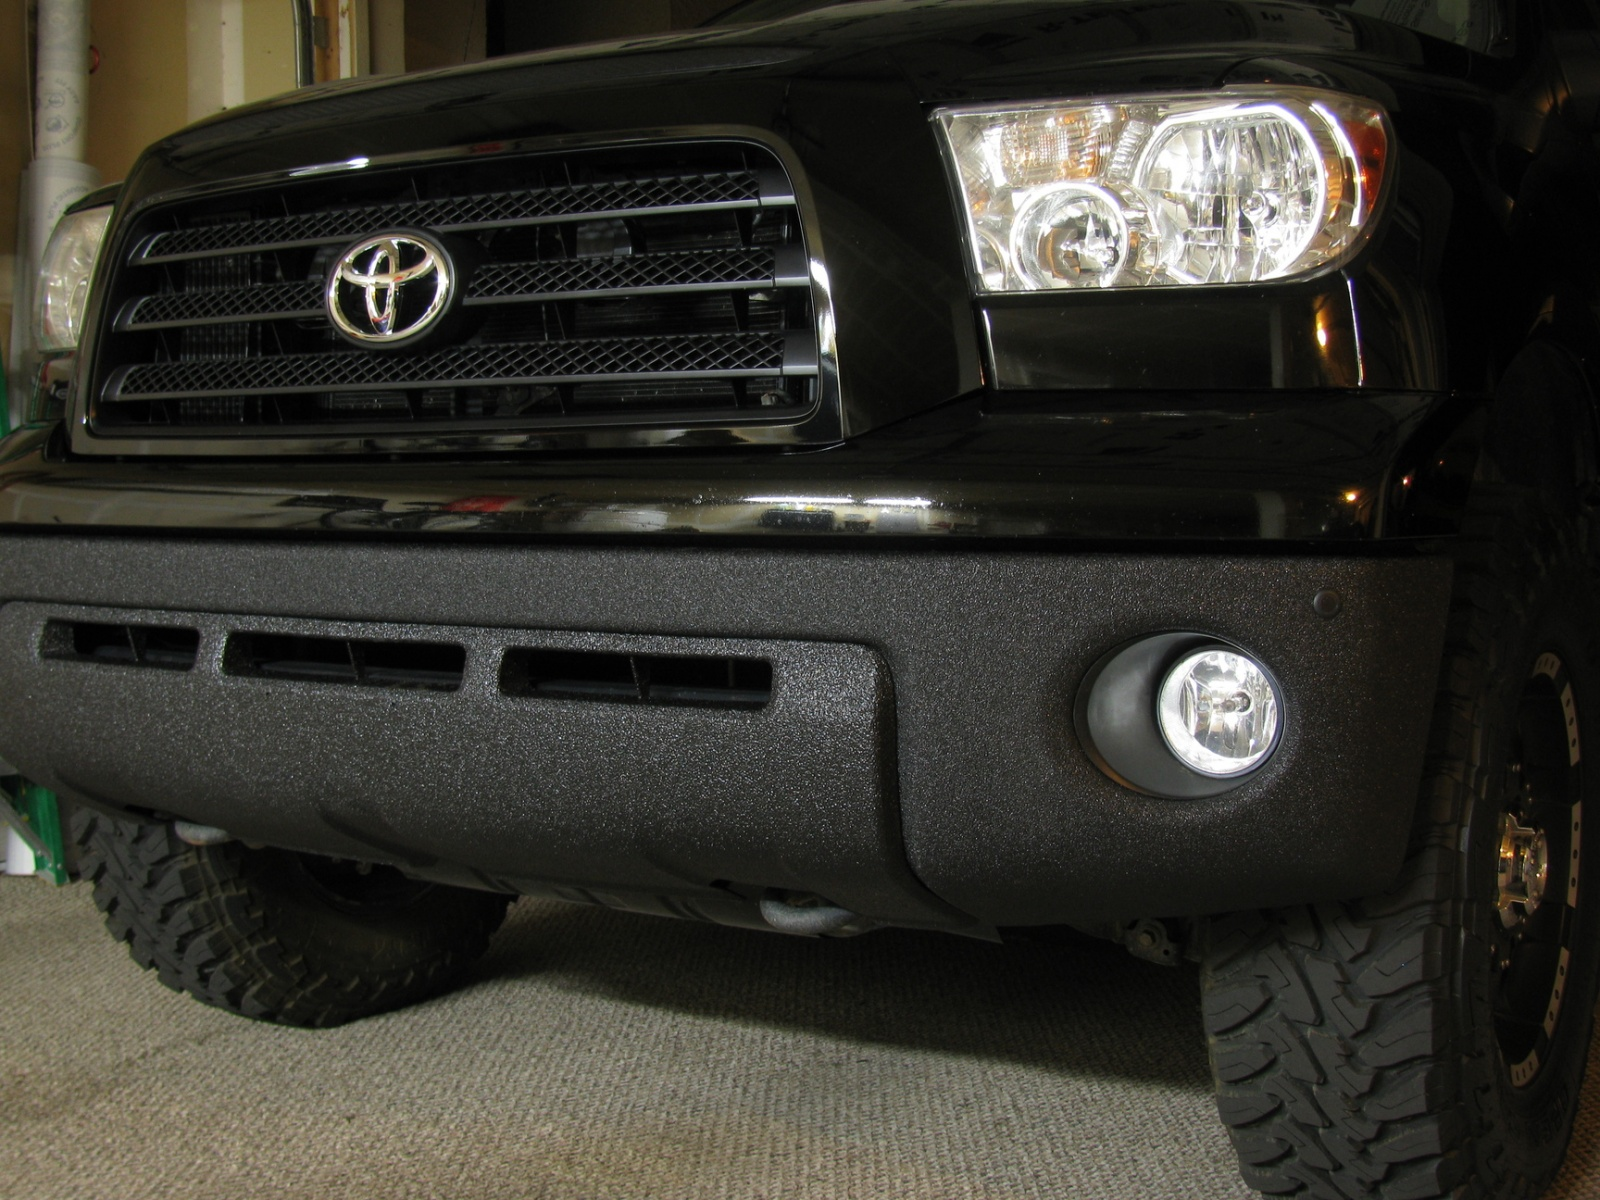 Powder coating | Toyota Tundra Forums